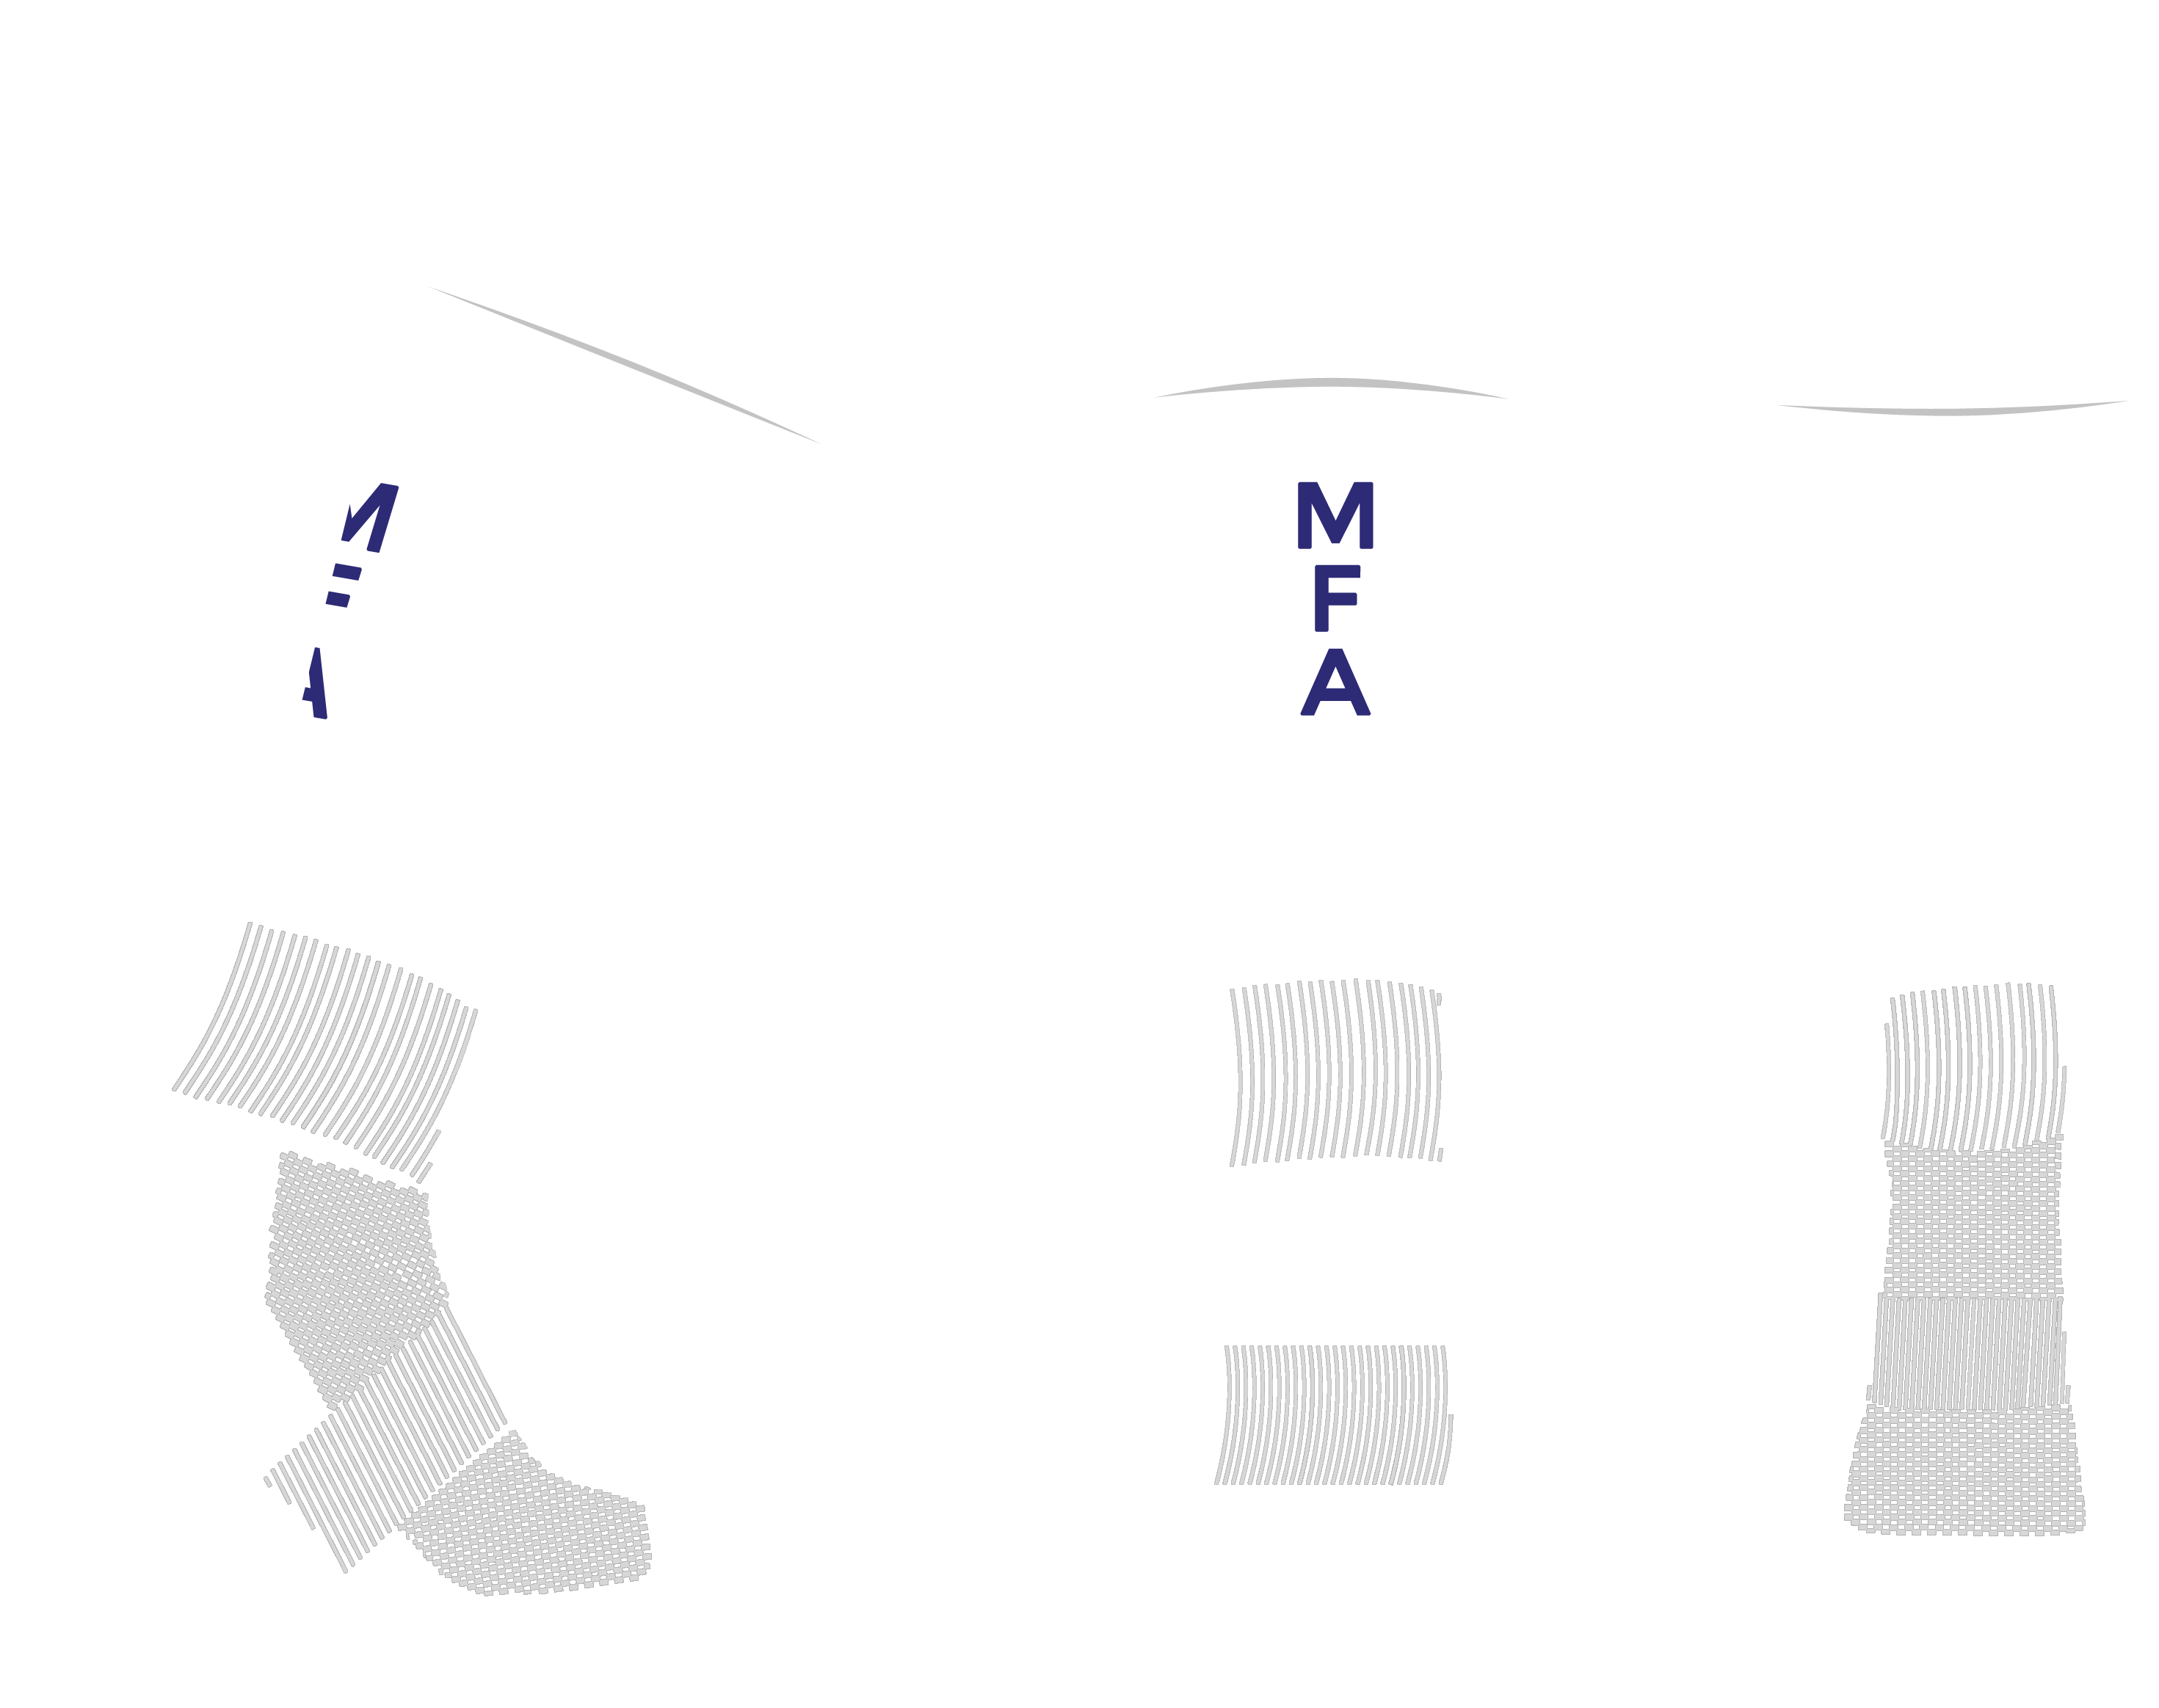 MFA Football Socks